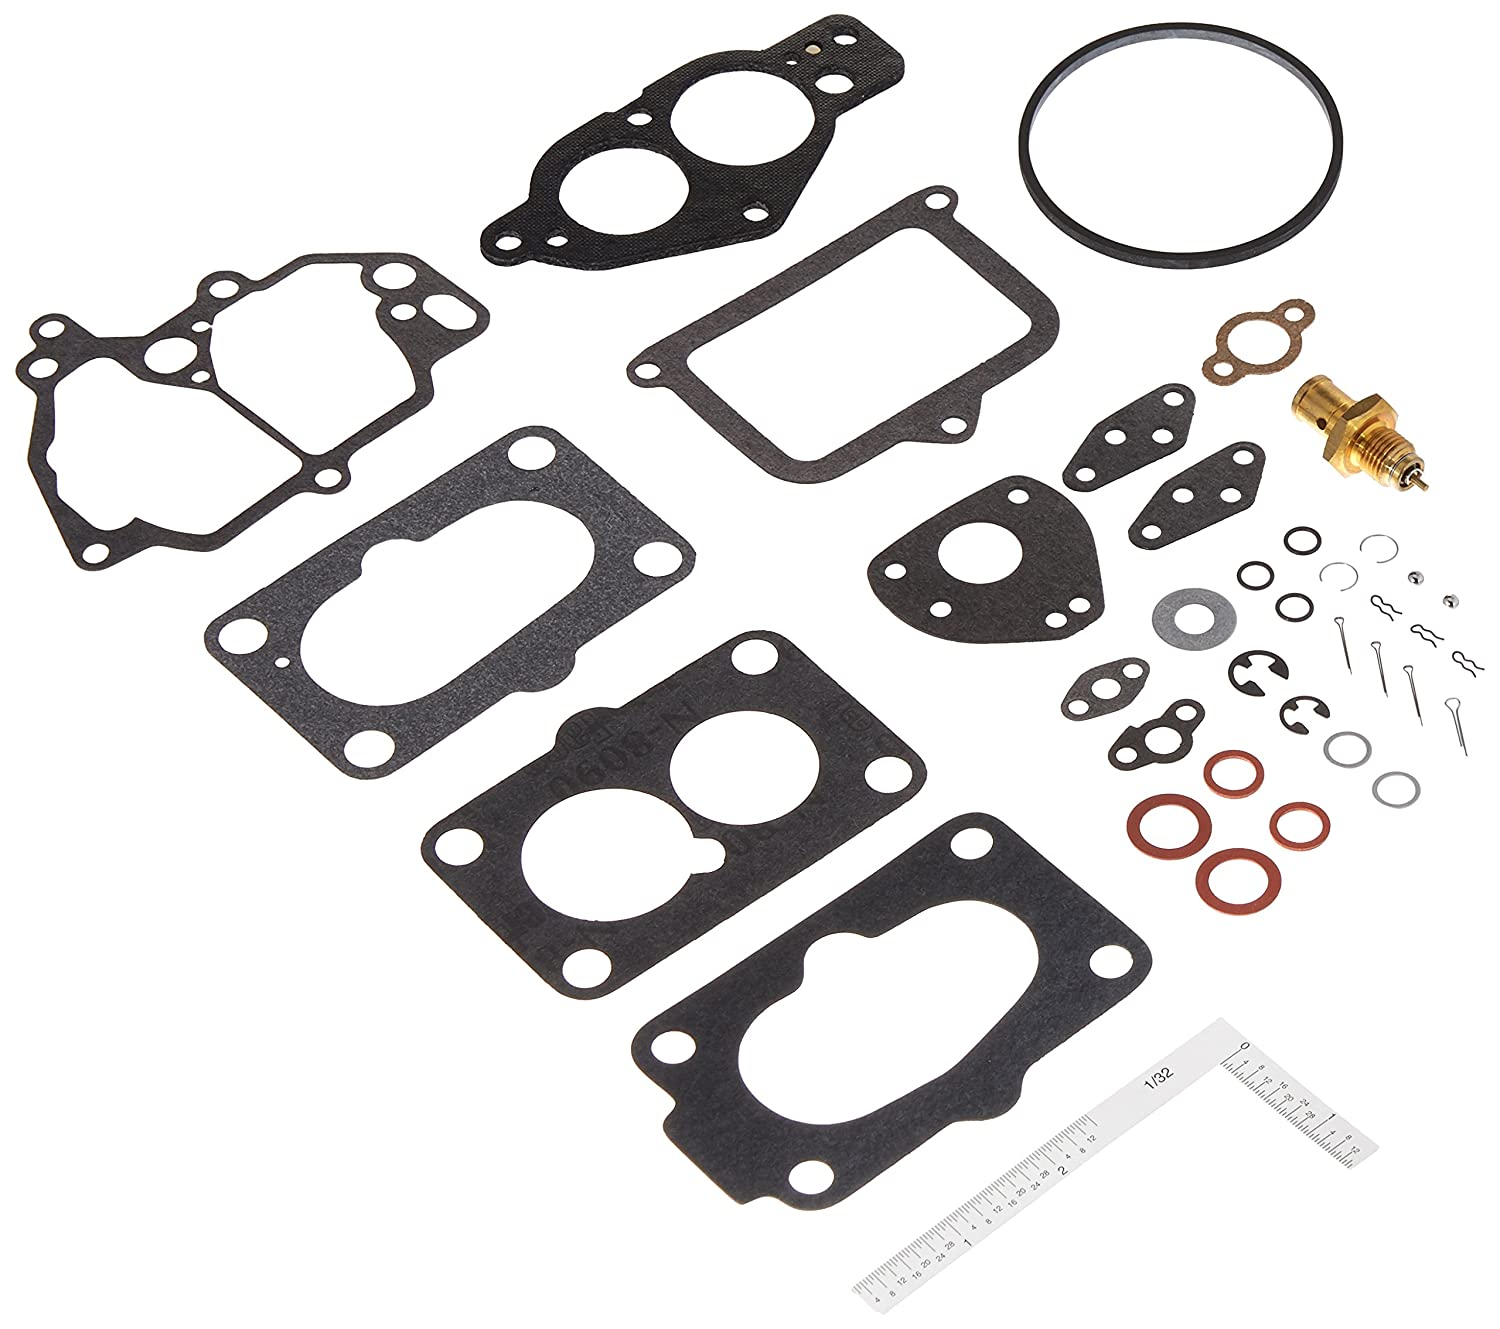 Standard Motor Products 751B Carburetor Kit